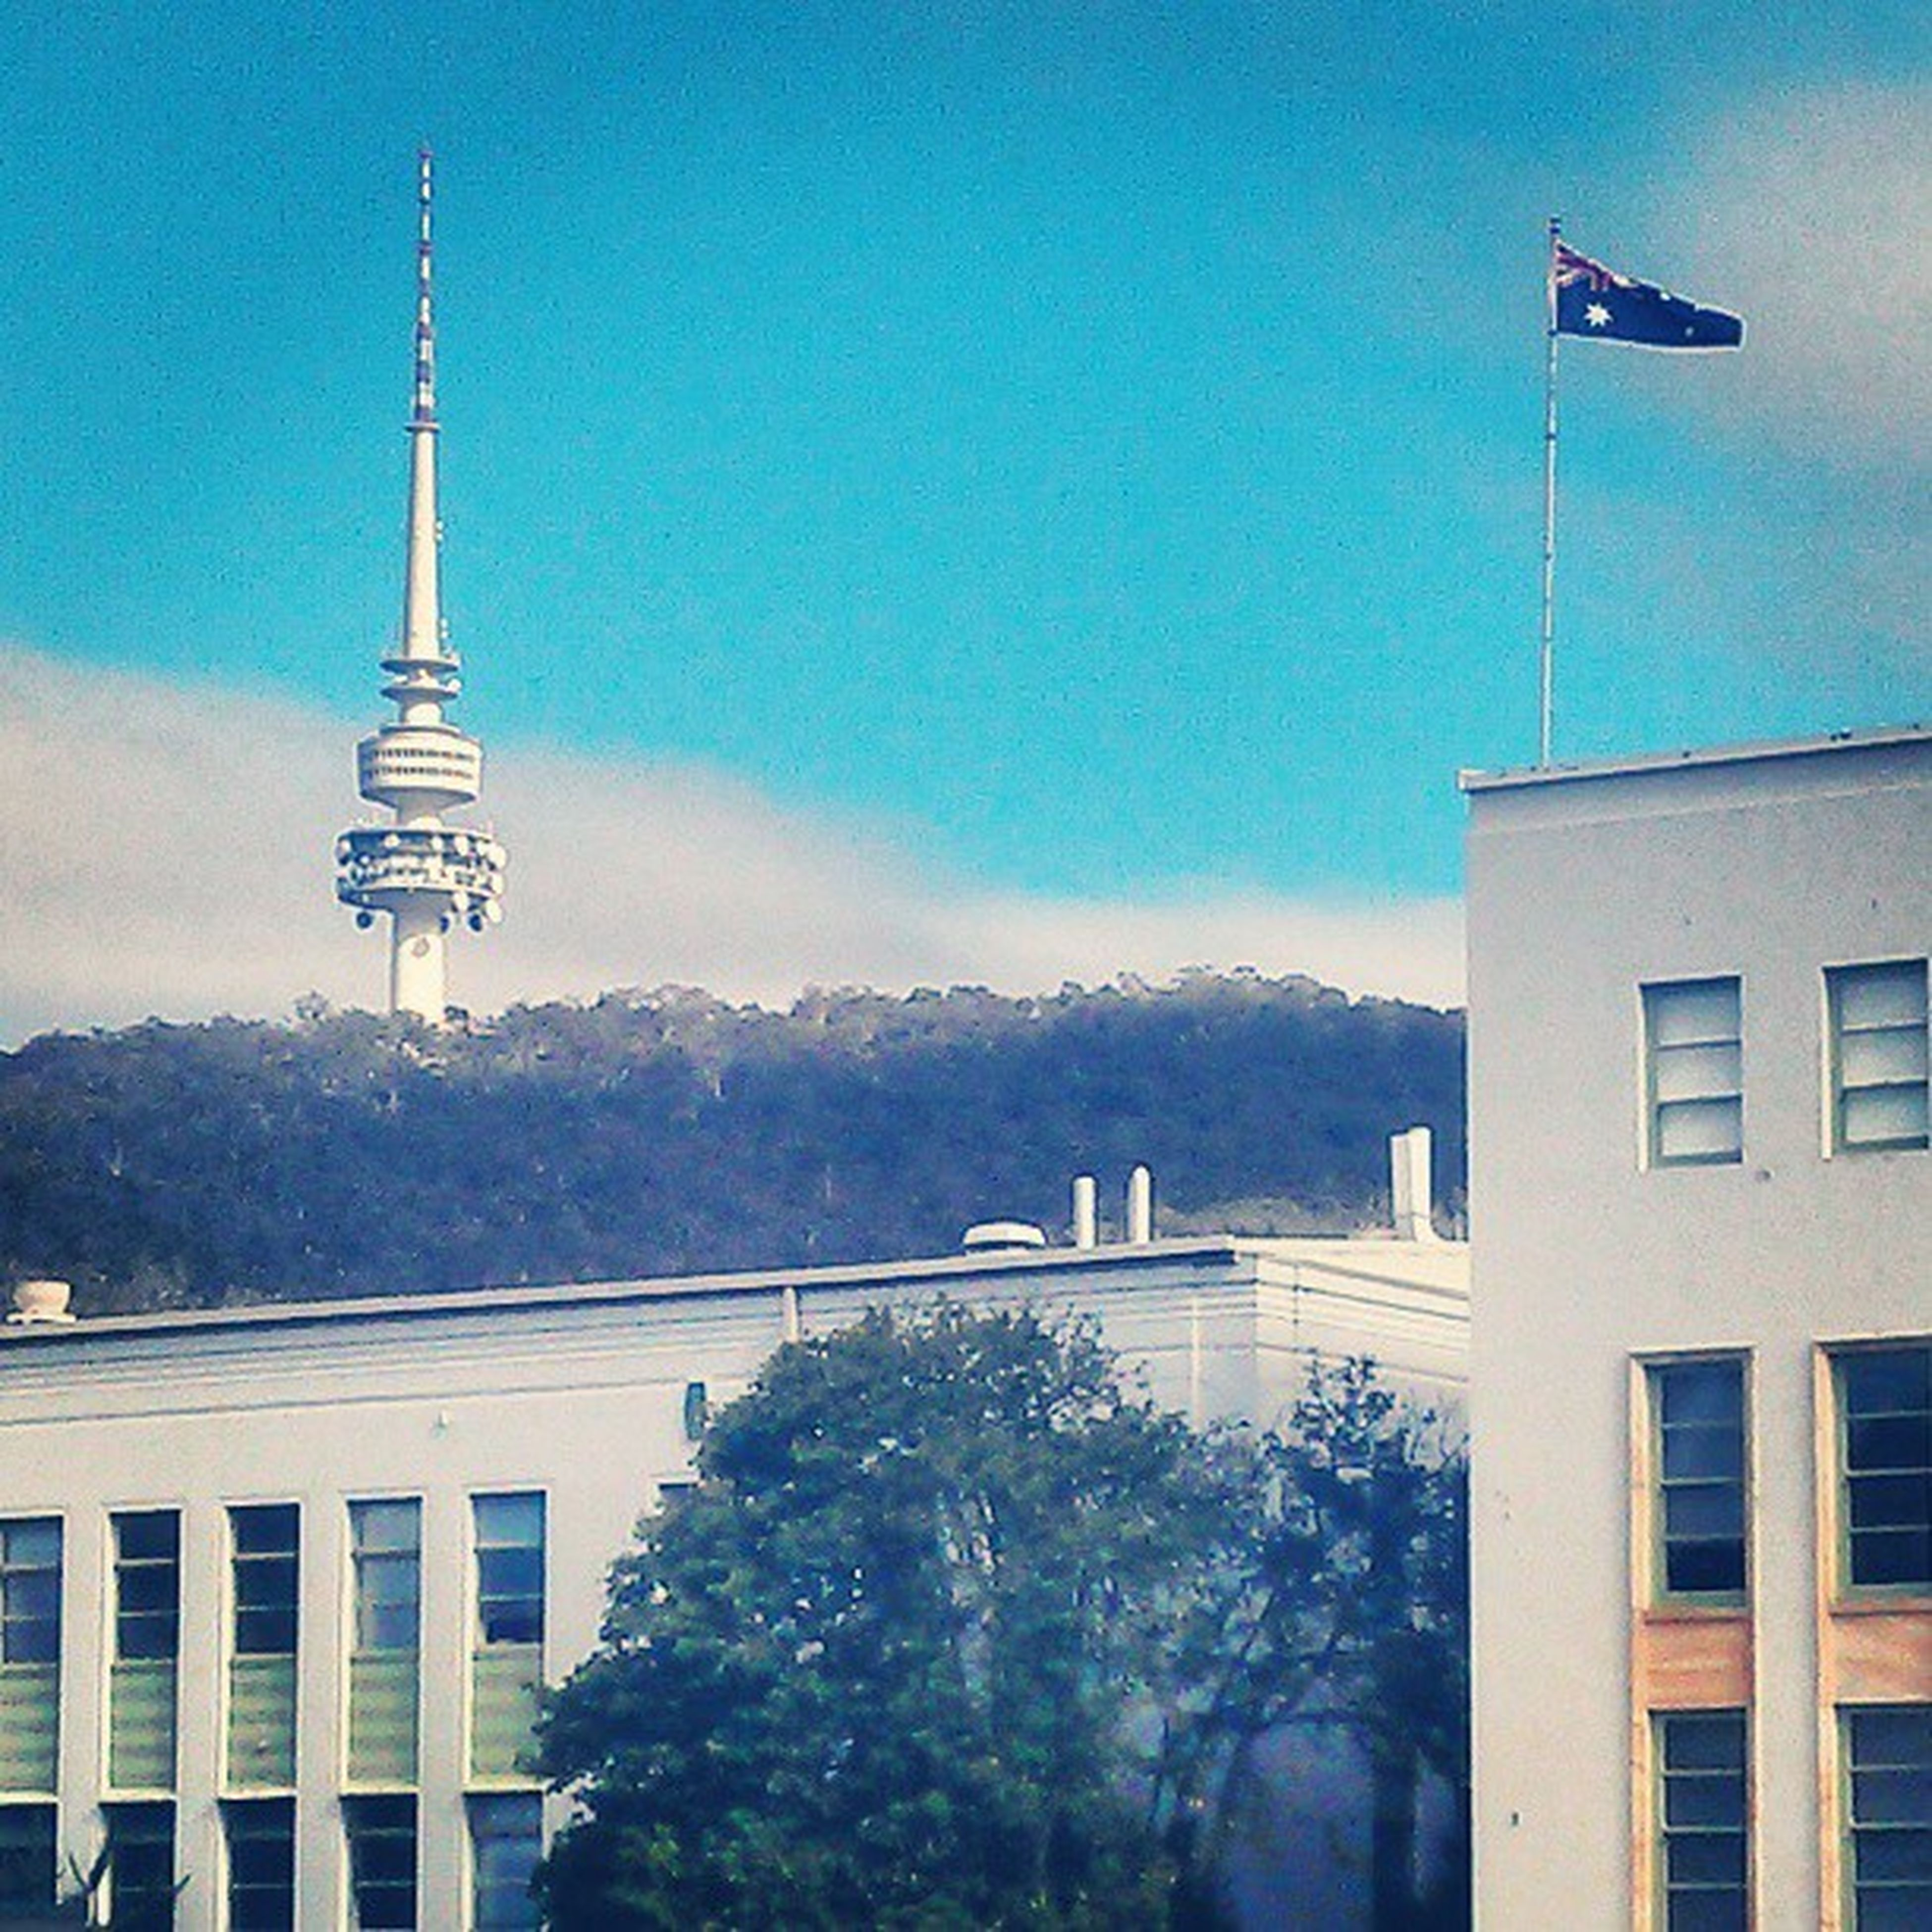 Flying the flag high for Australian Science . A nice morning at the Csiro Biodiversity conference